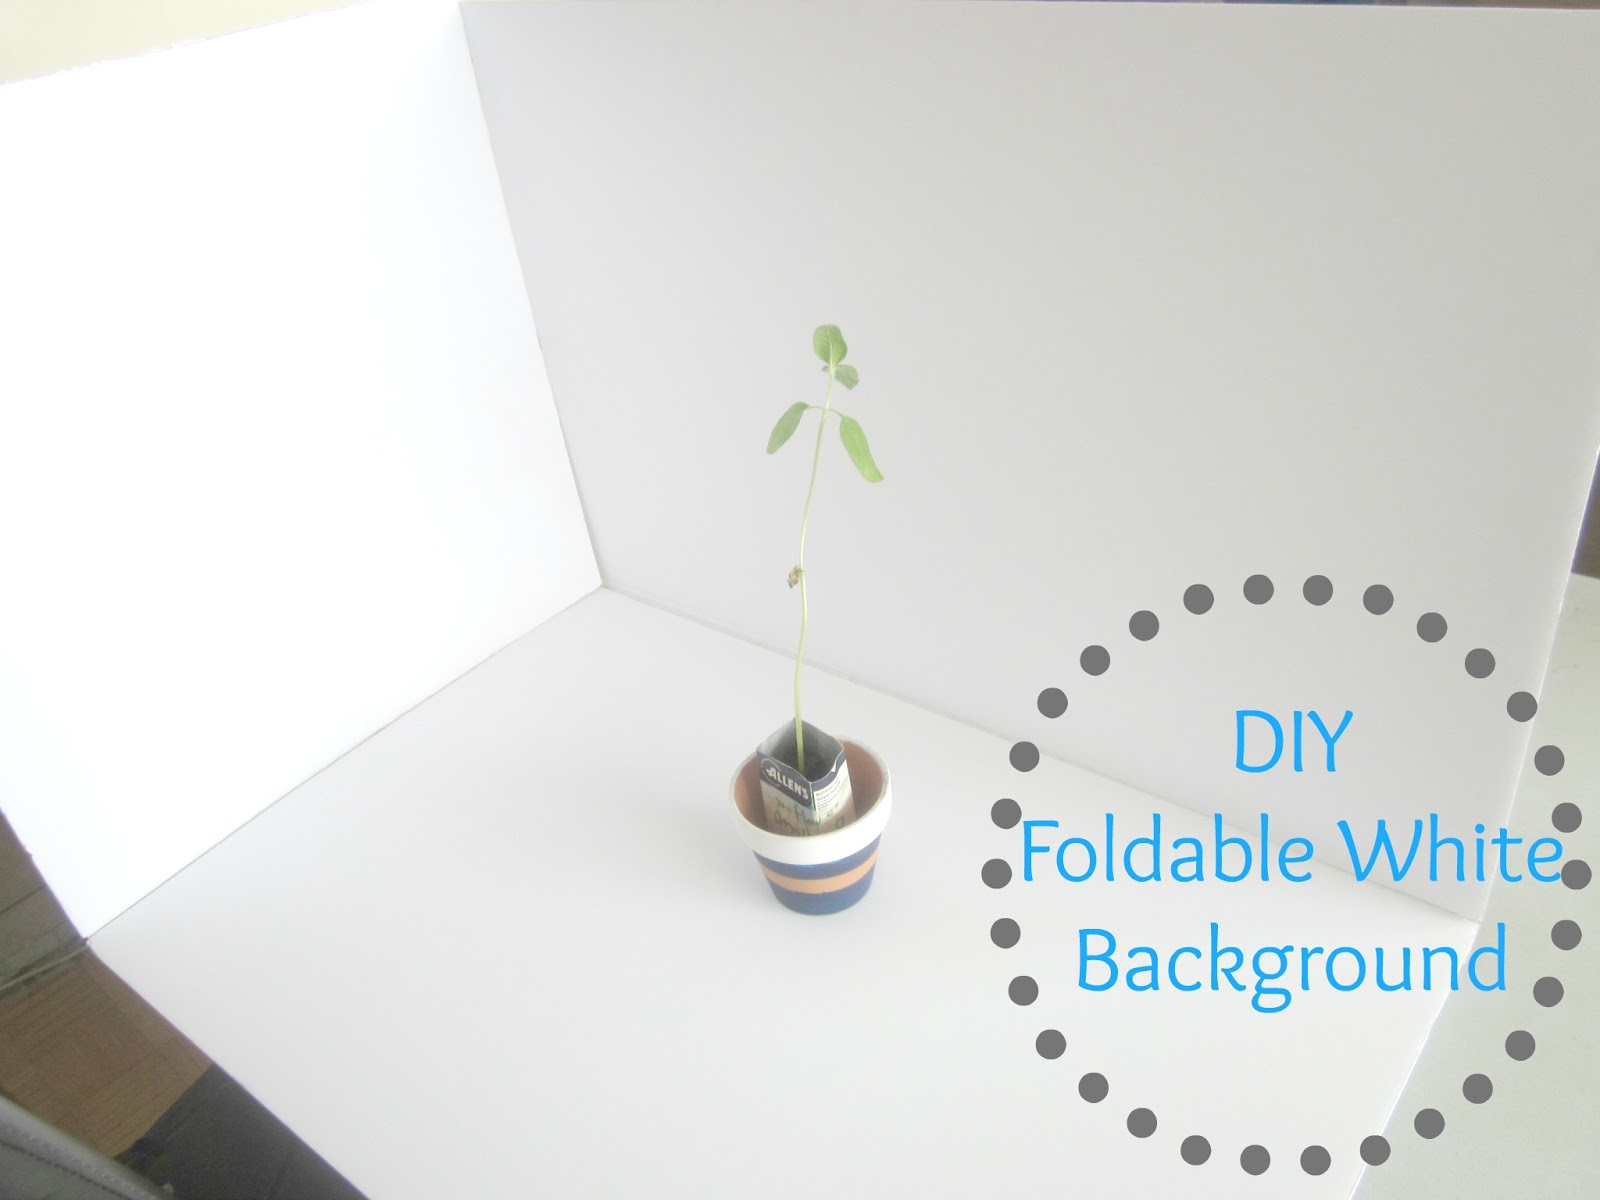 diy foldable photo white background